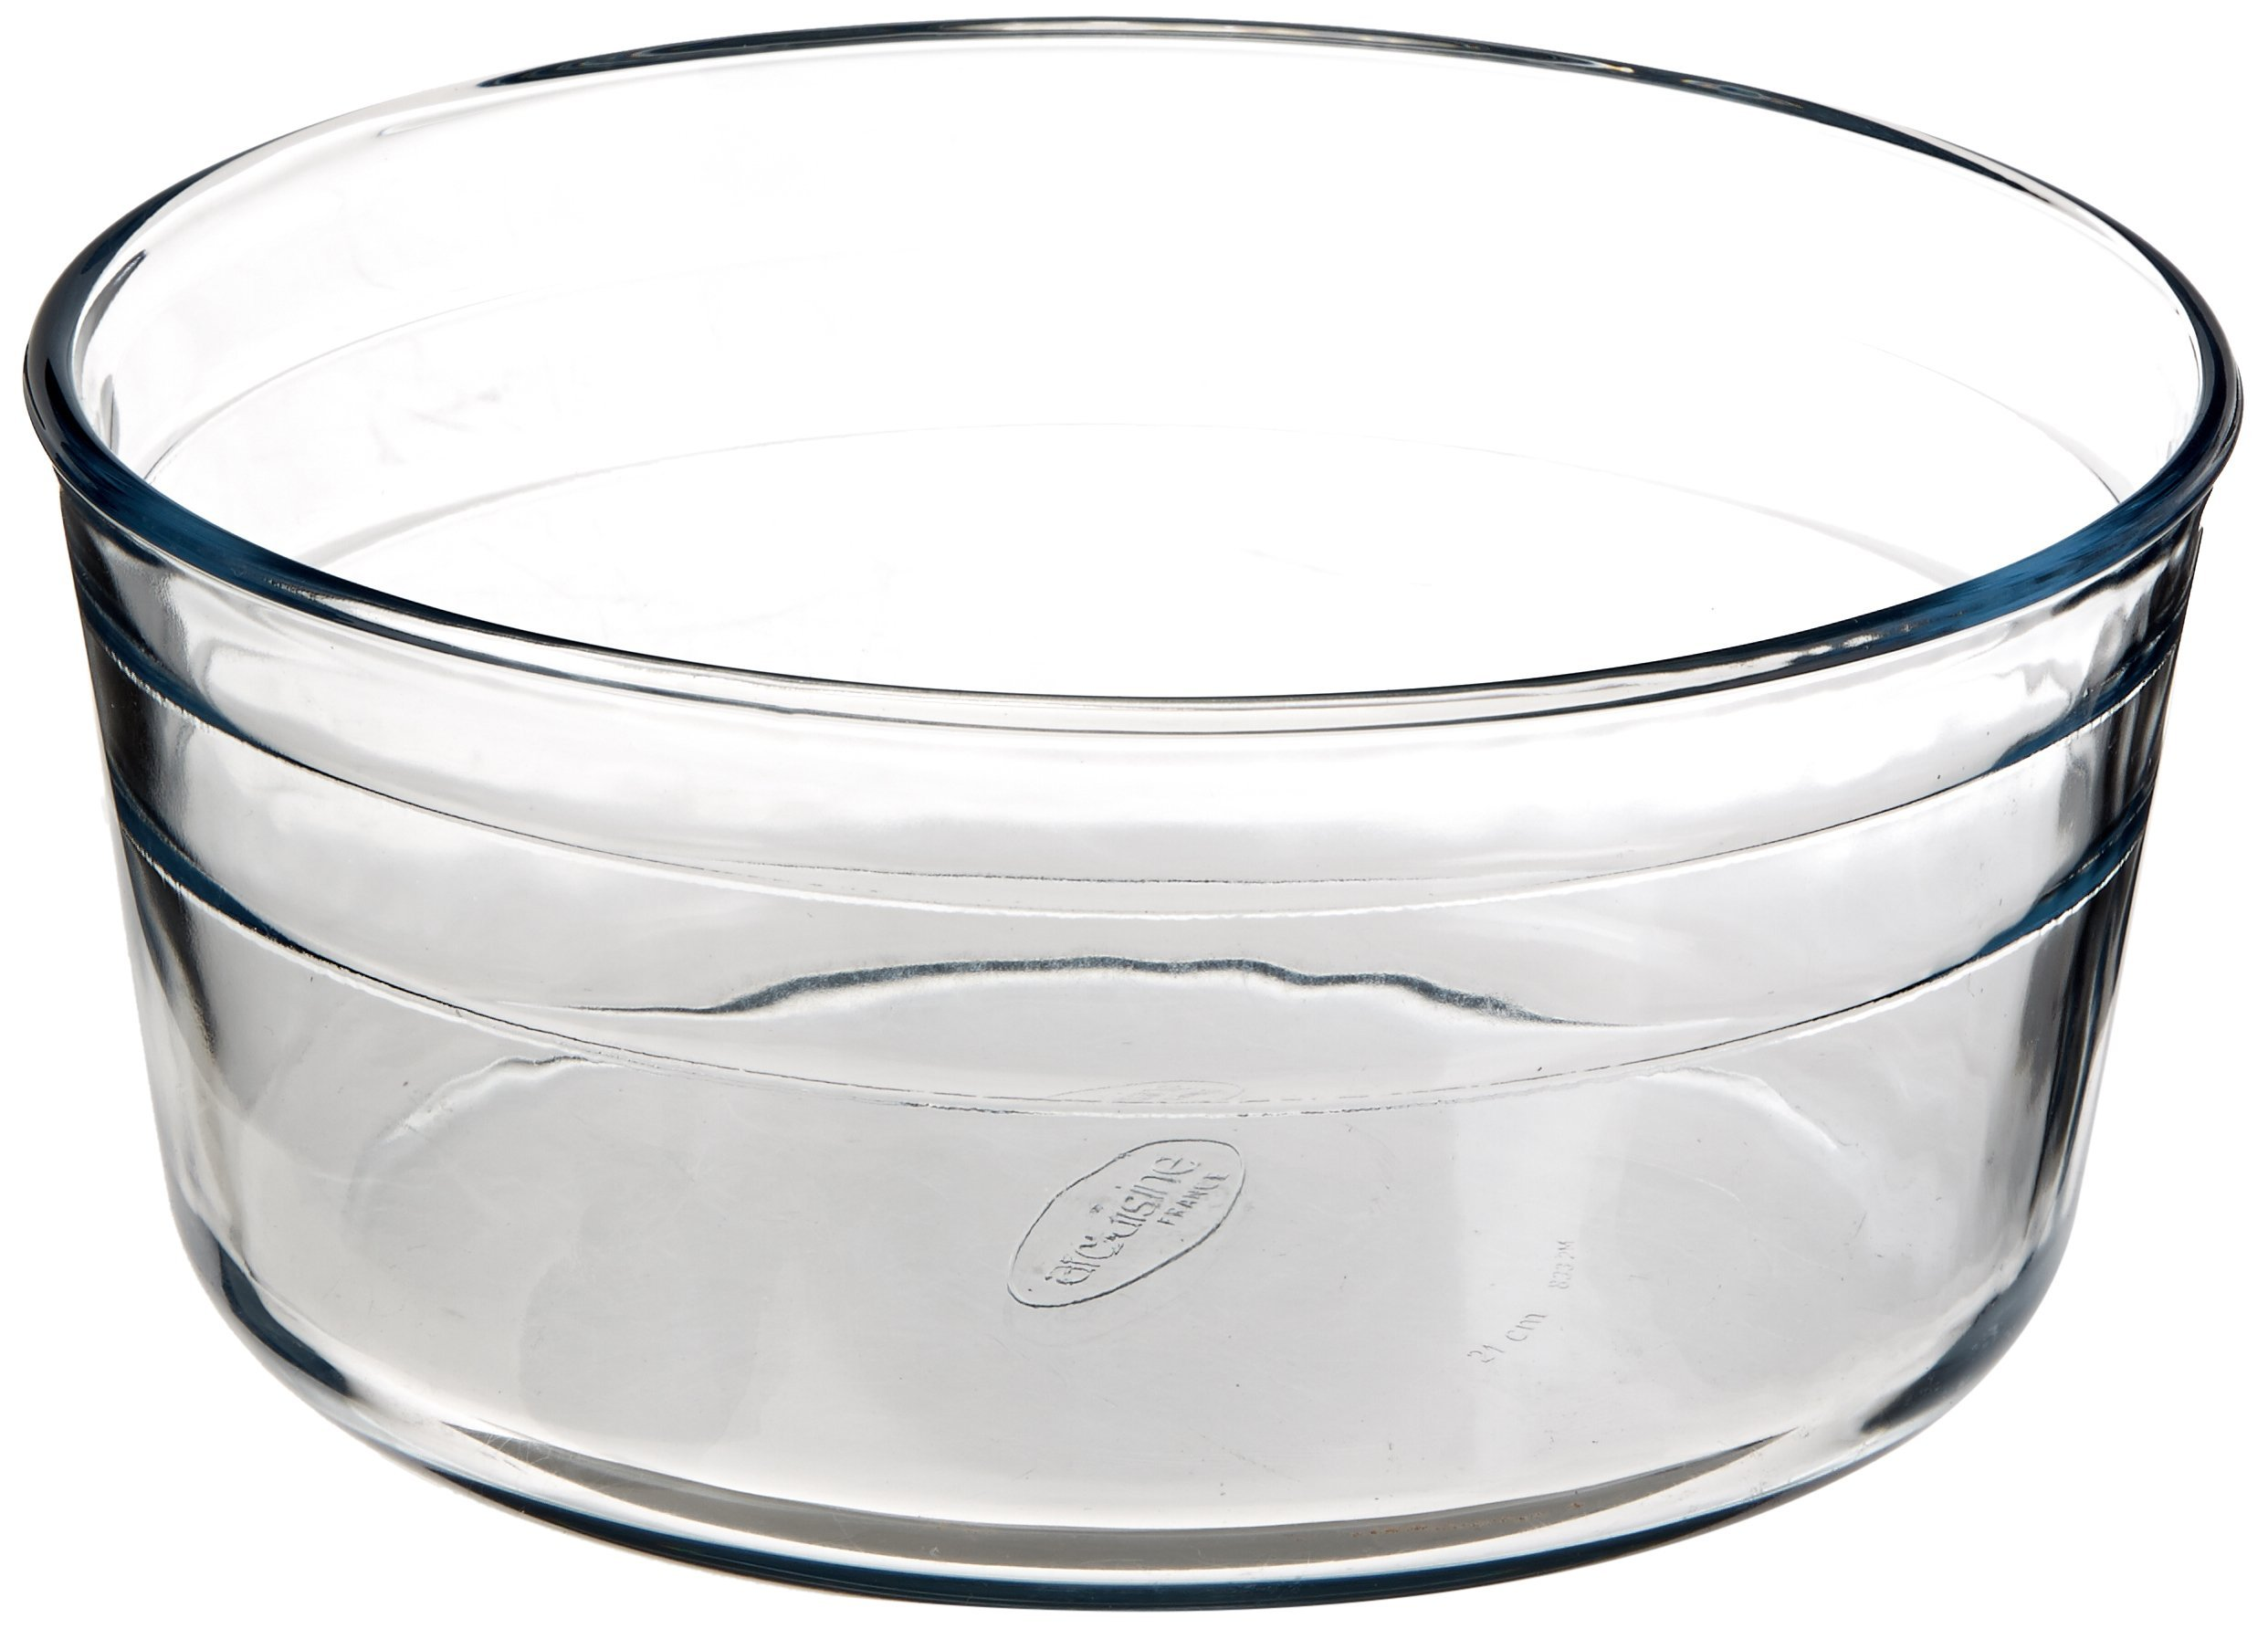 Arcuisine Borosilicate Glass Soufflé Dish 8.5 Inches (21 Centimeters) by International Cookware (Image #1)